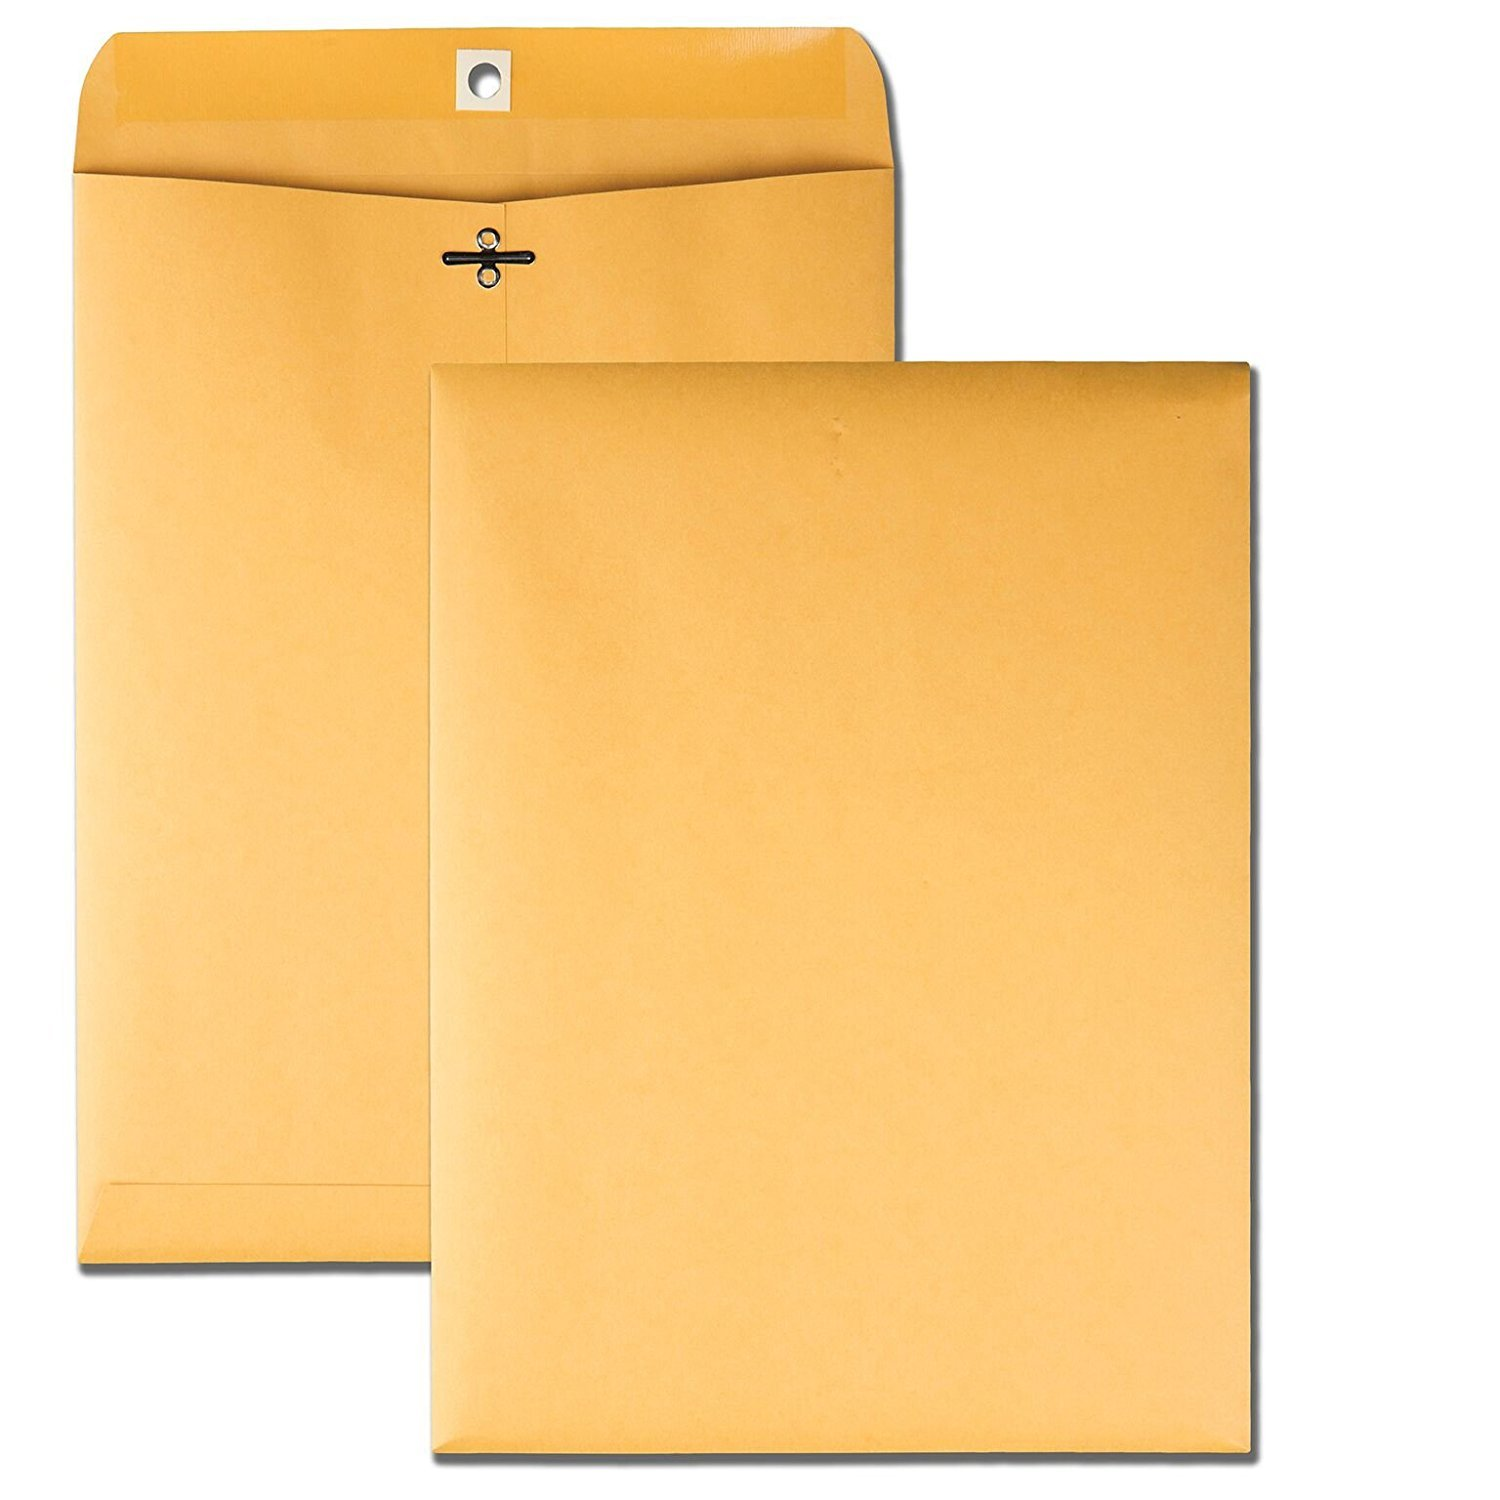 9 x 12 Clasp Envelopes with Deeply Gummed Flaps, Great for Filing, Storing or Mailing Documents, 28 lb Brown Kraft, 100 per Box (37890) (Pack of 1000)